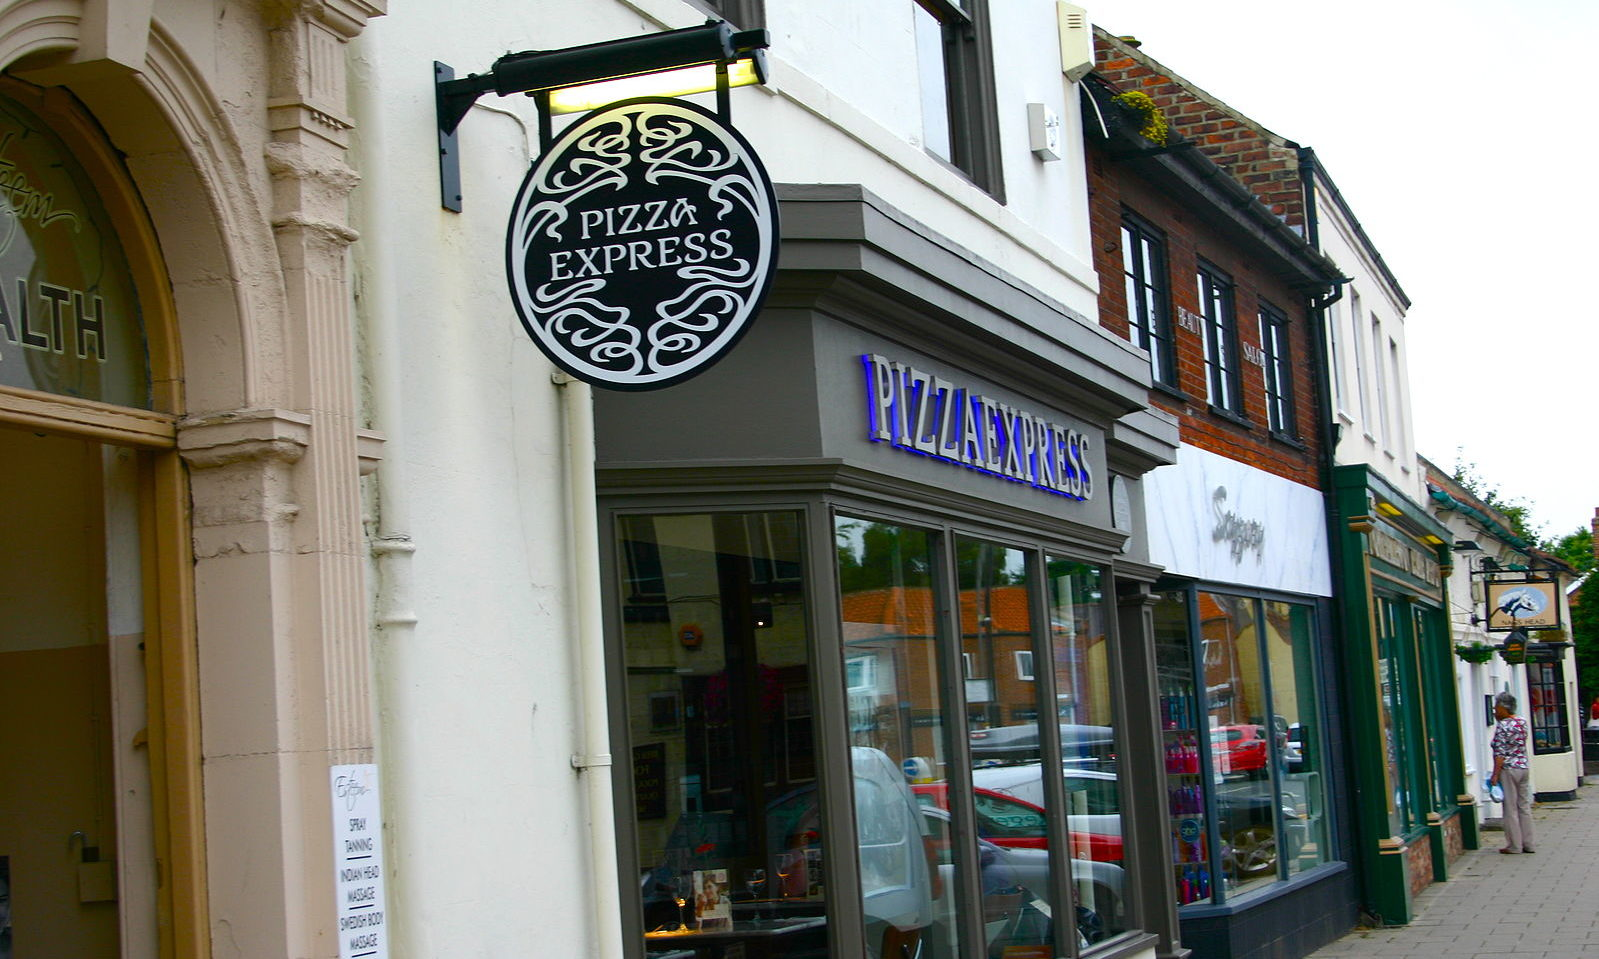 Royal Wedding Reception Pizza Express Order Post